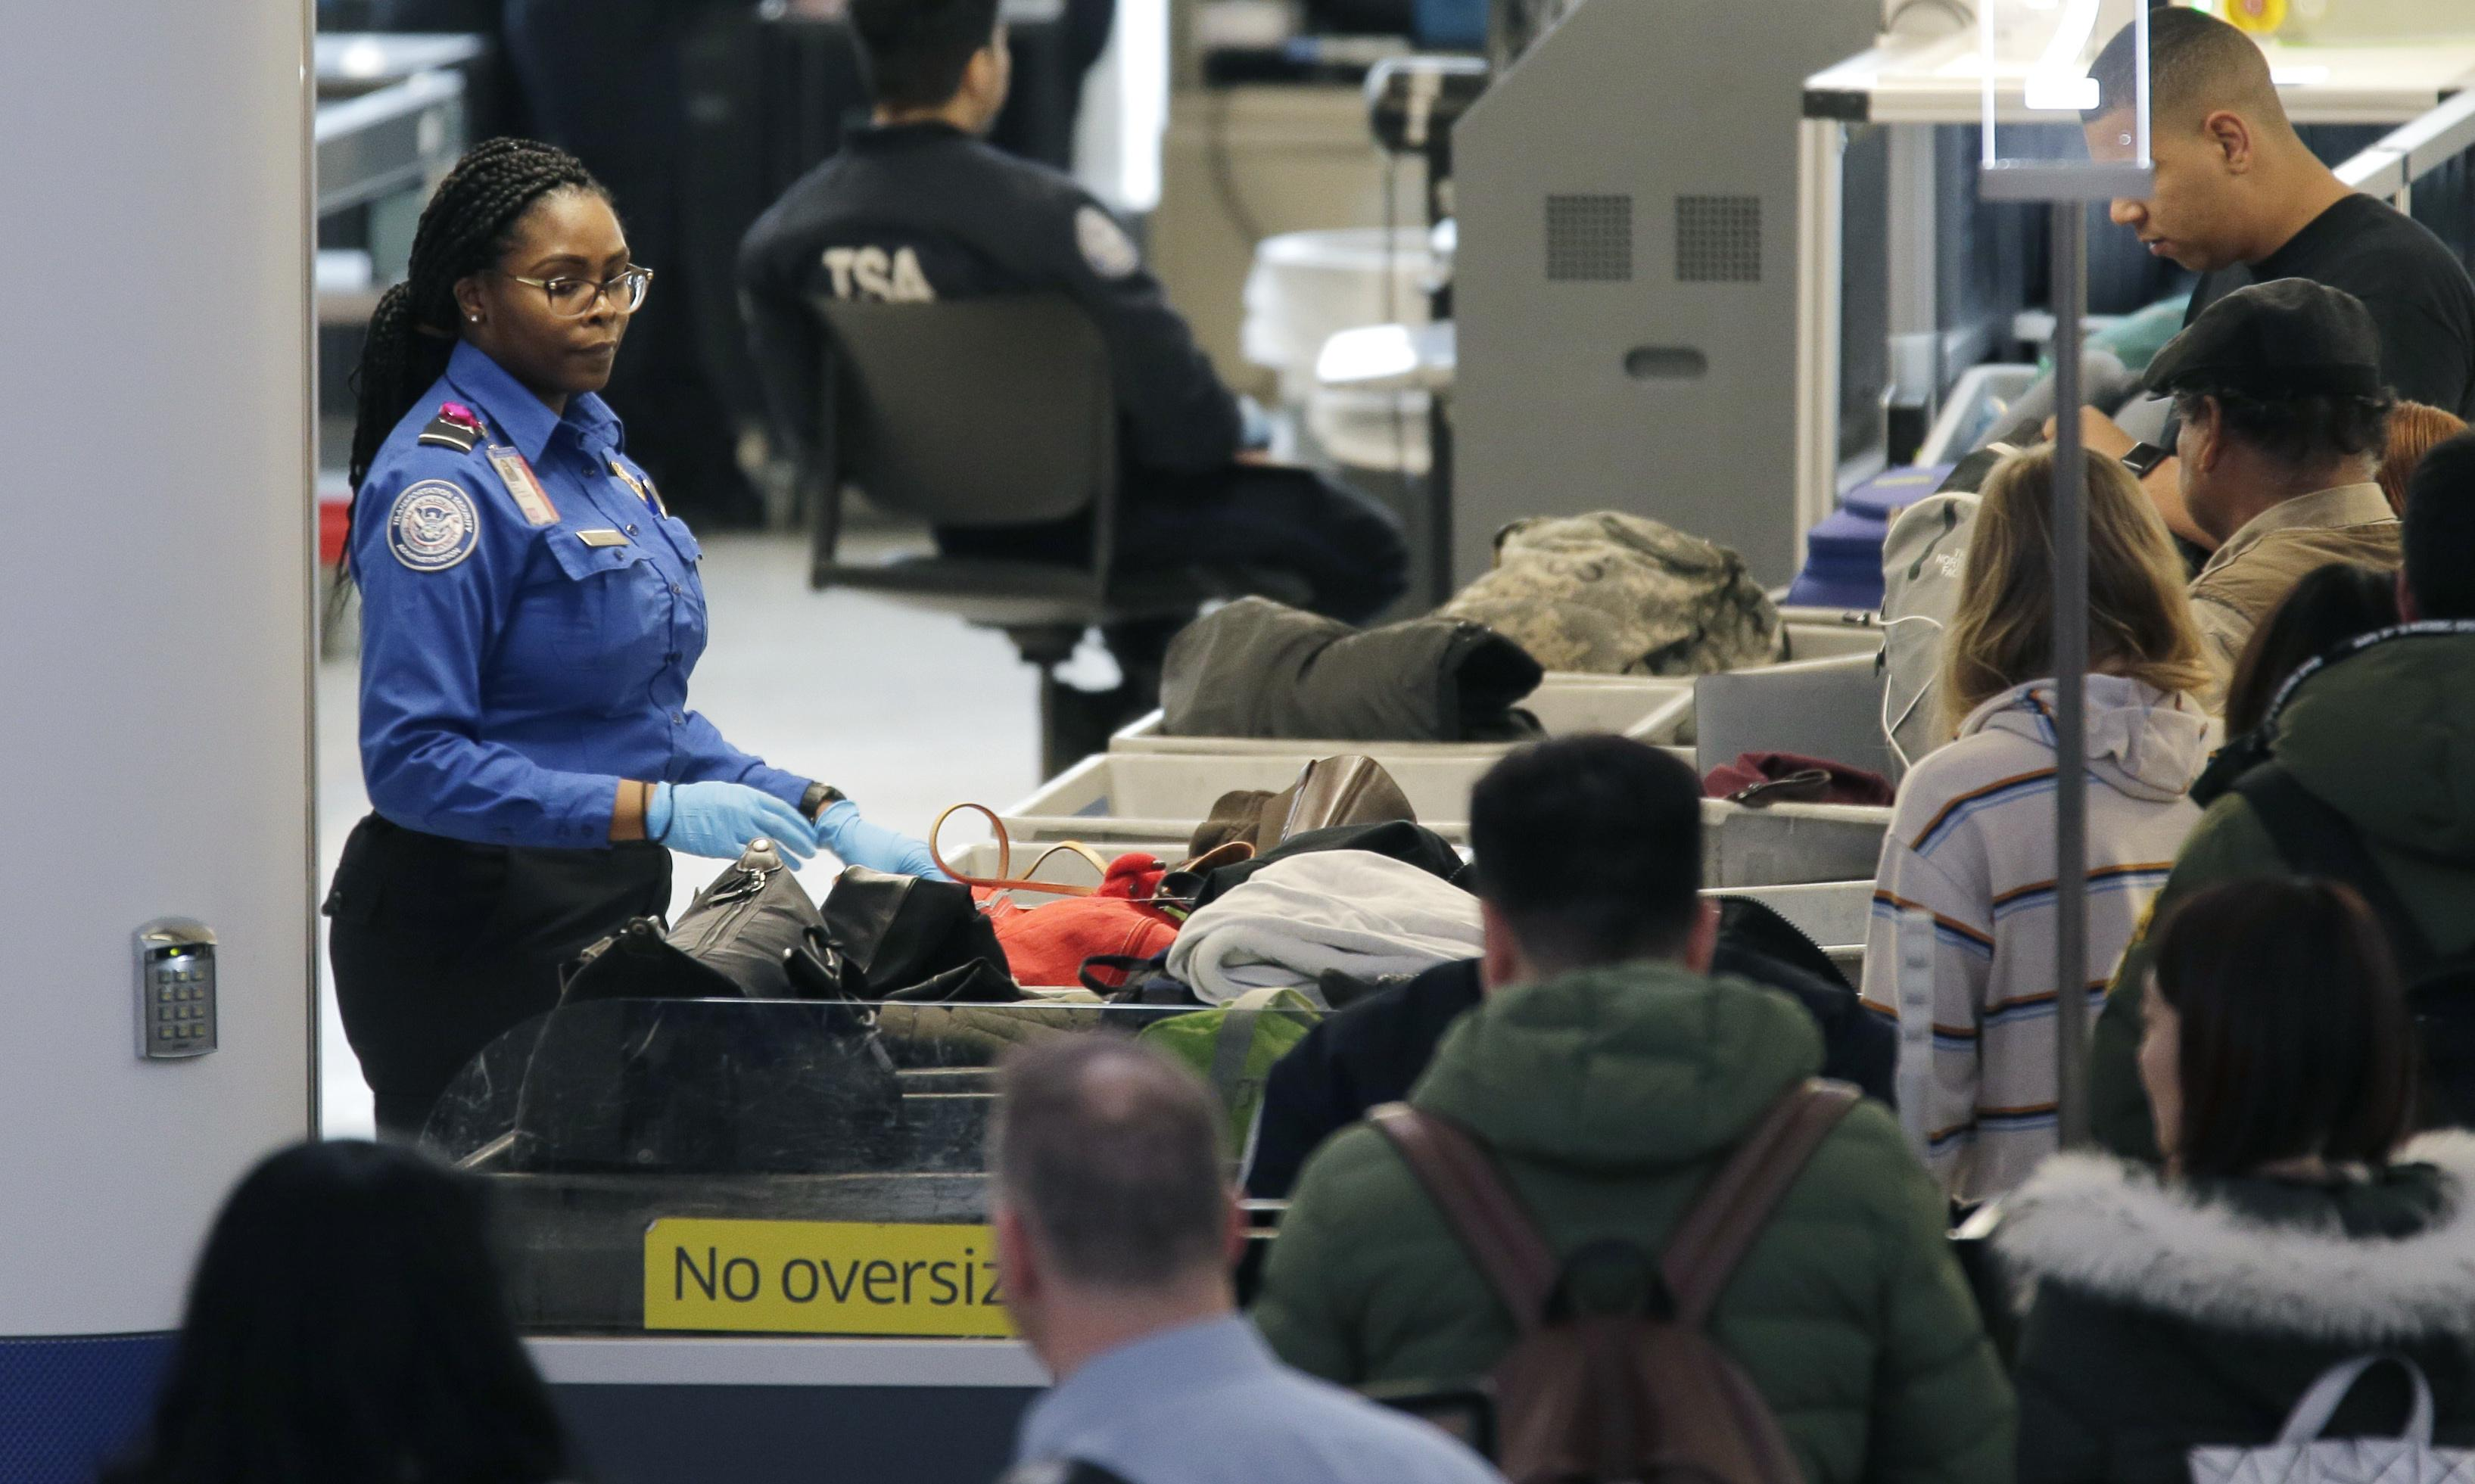 'Every day it gets less safe to fly': air travelers begin to feel effects of shutdown